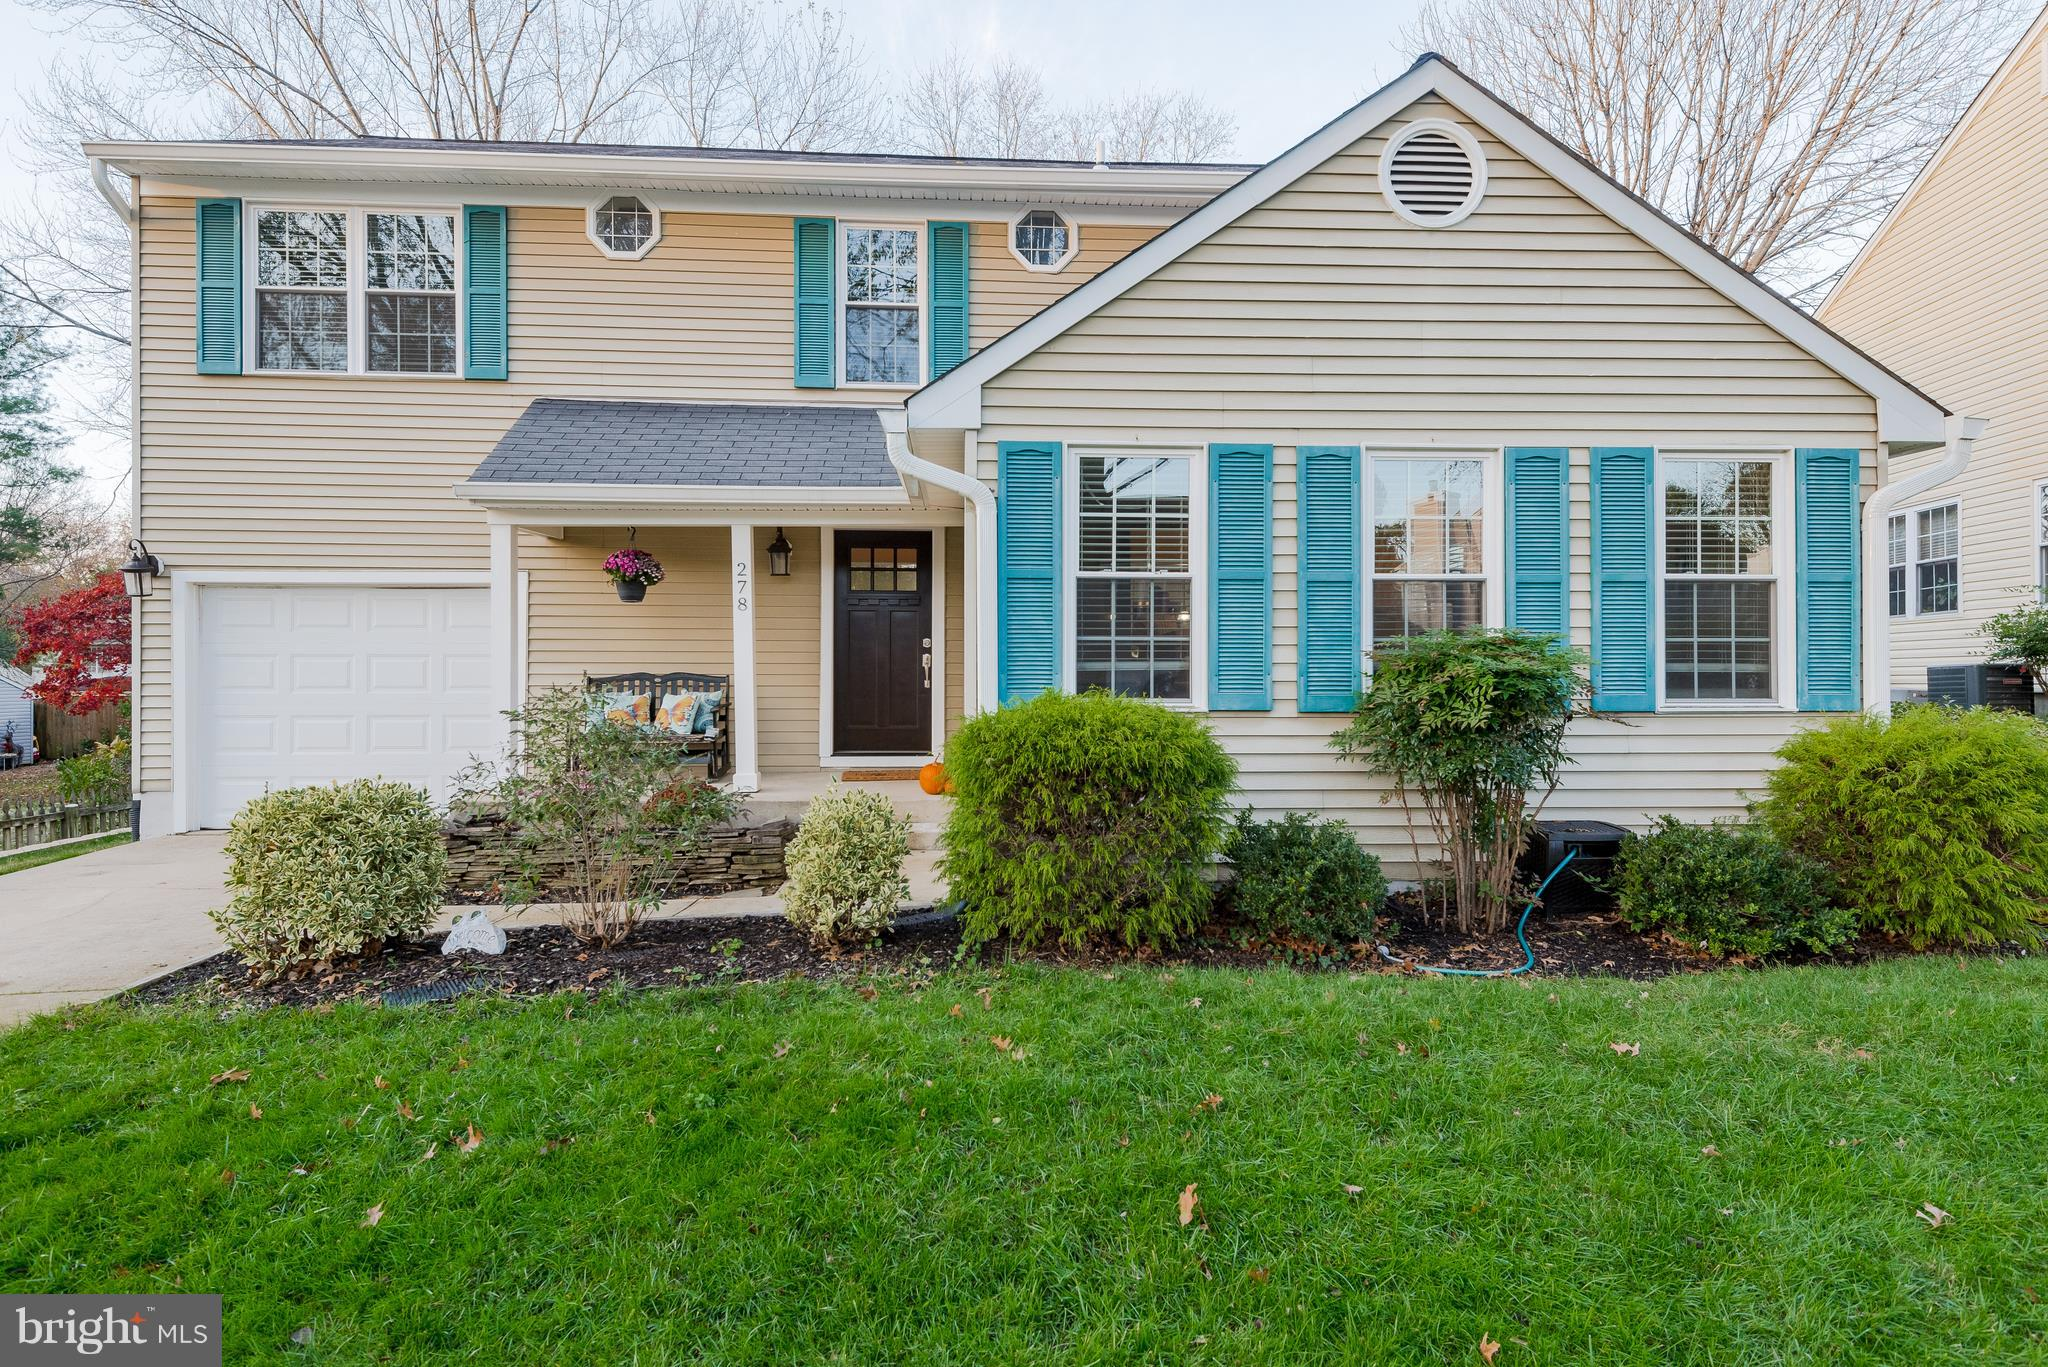 Extremely well maintained home on a cul de sac street. New windows, new gutters, new carpet, new mas